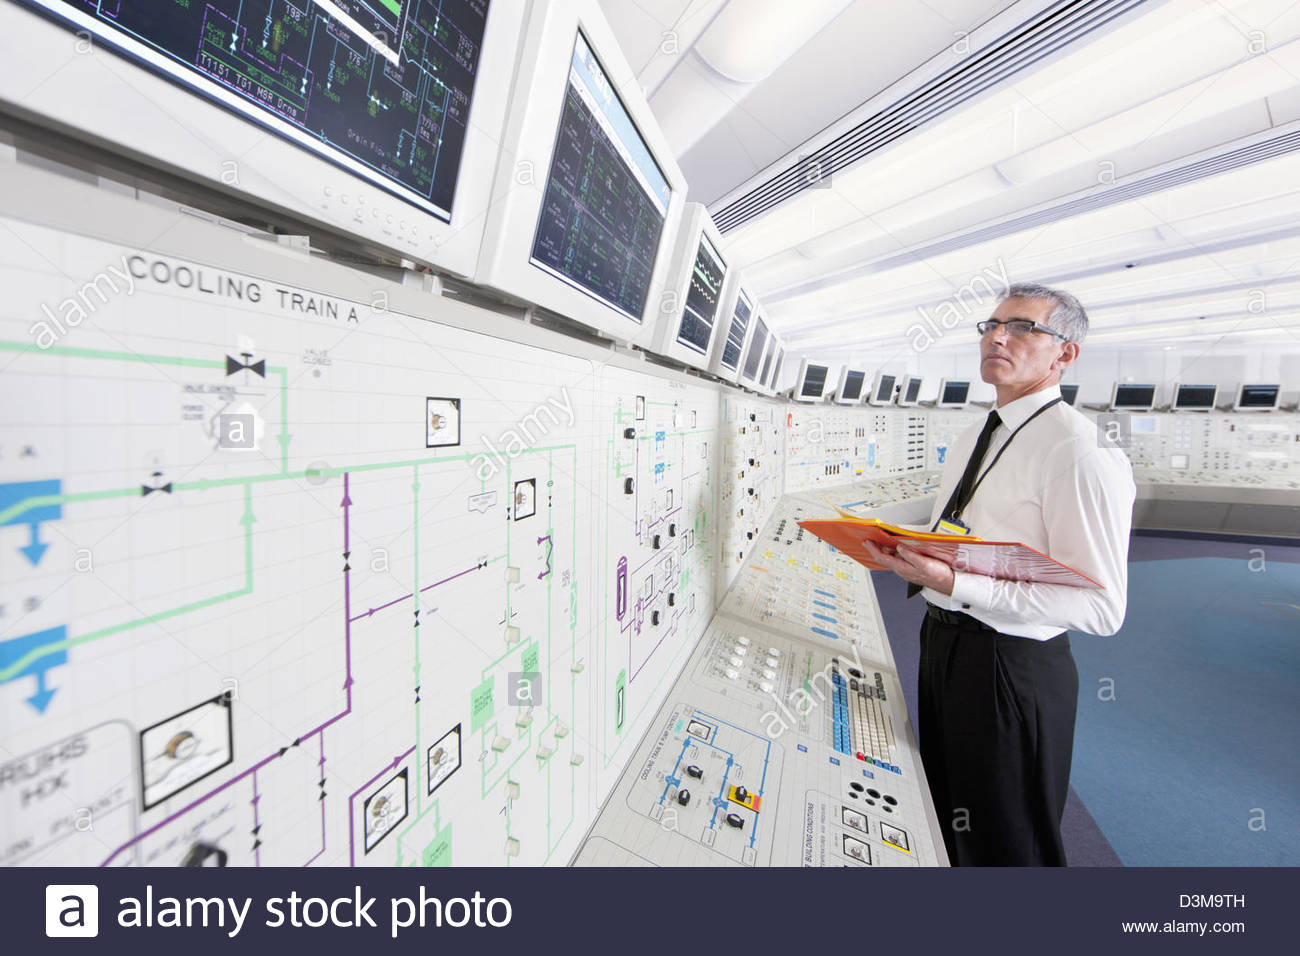 Engineer looking up at monitors in control room of nuclear power station - Stock Image